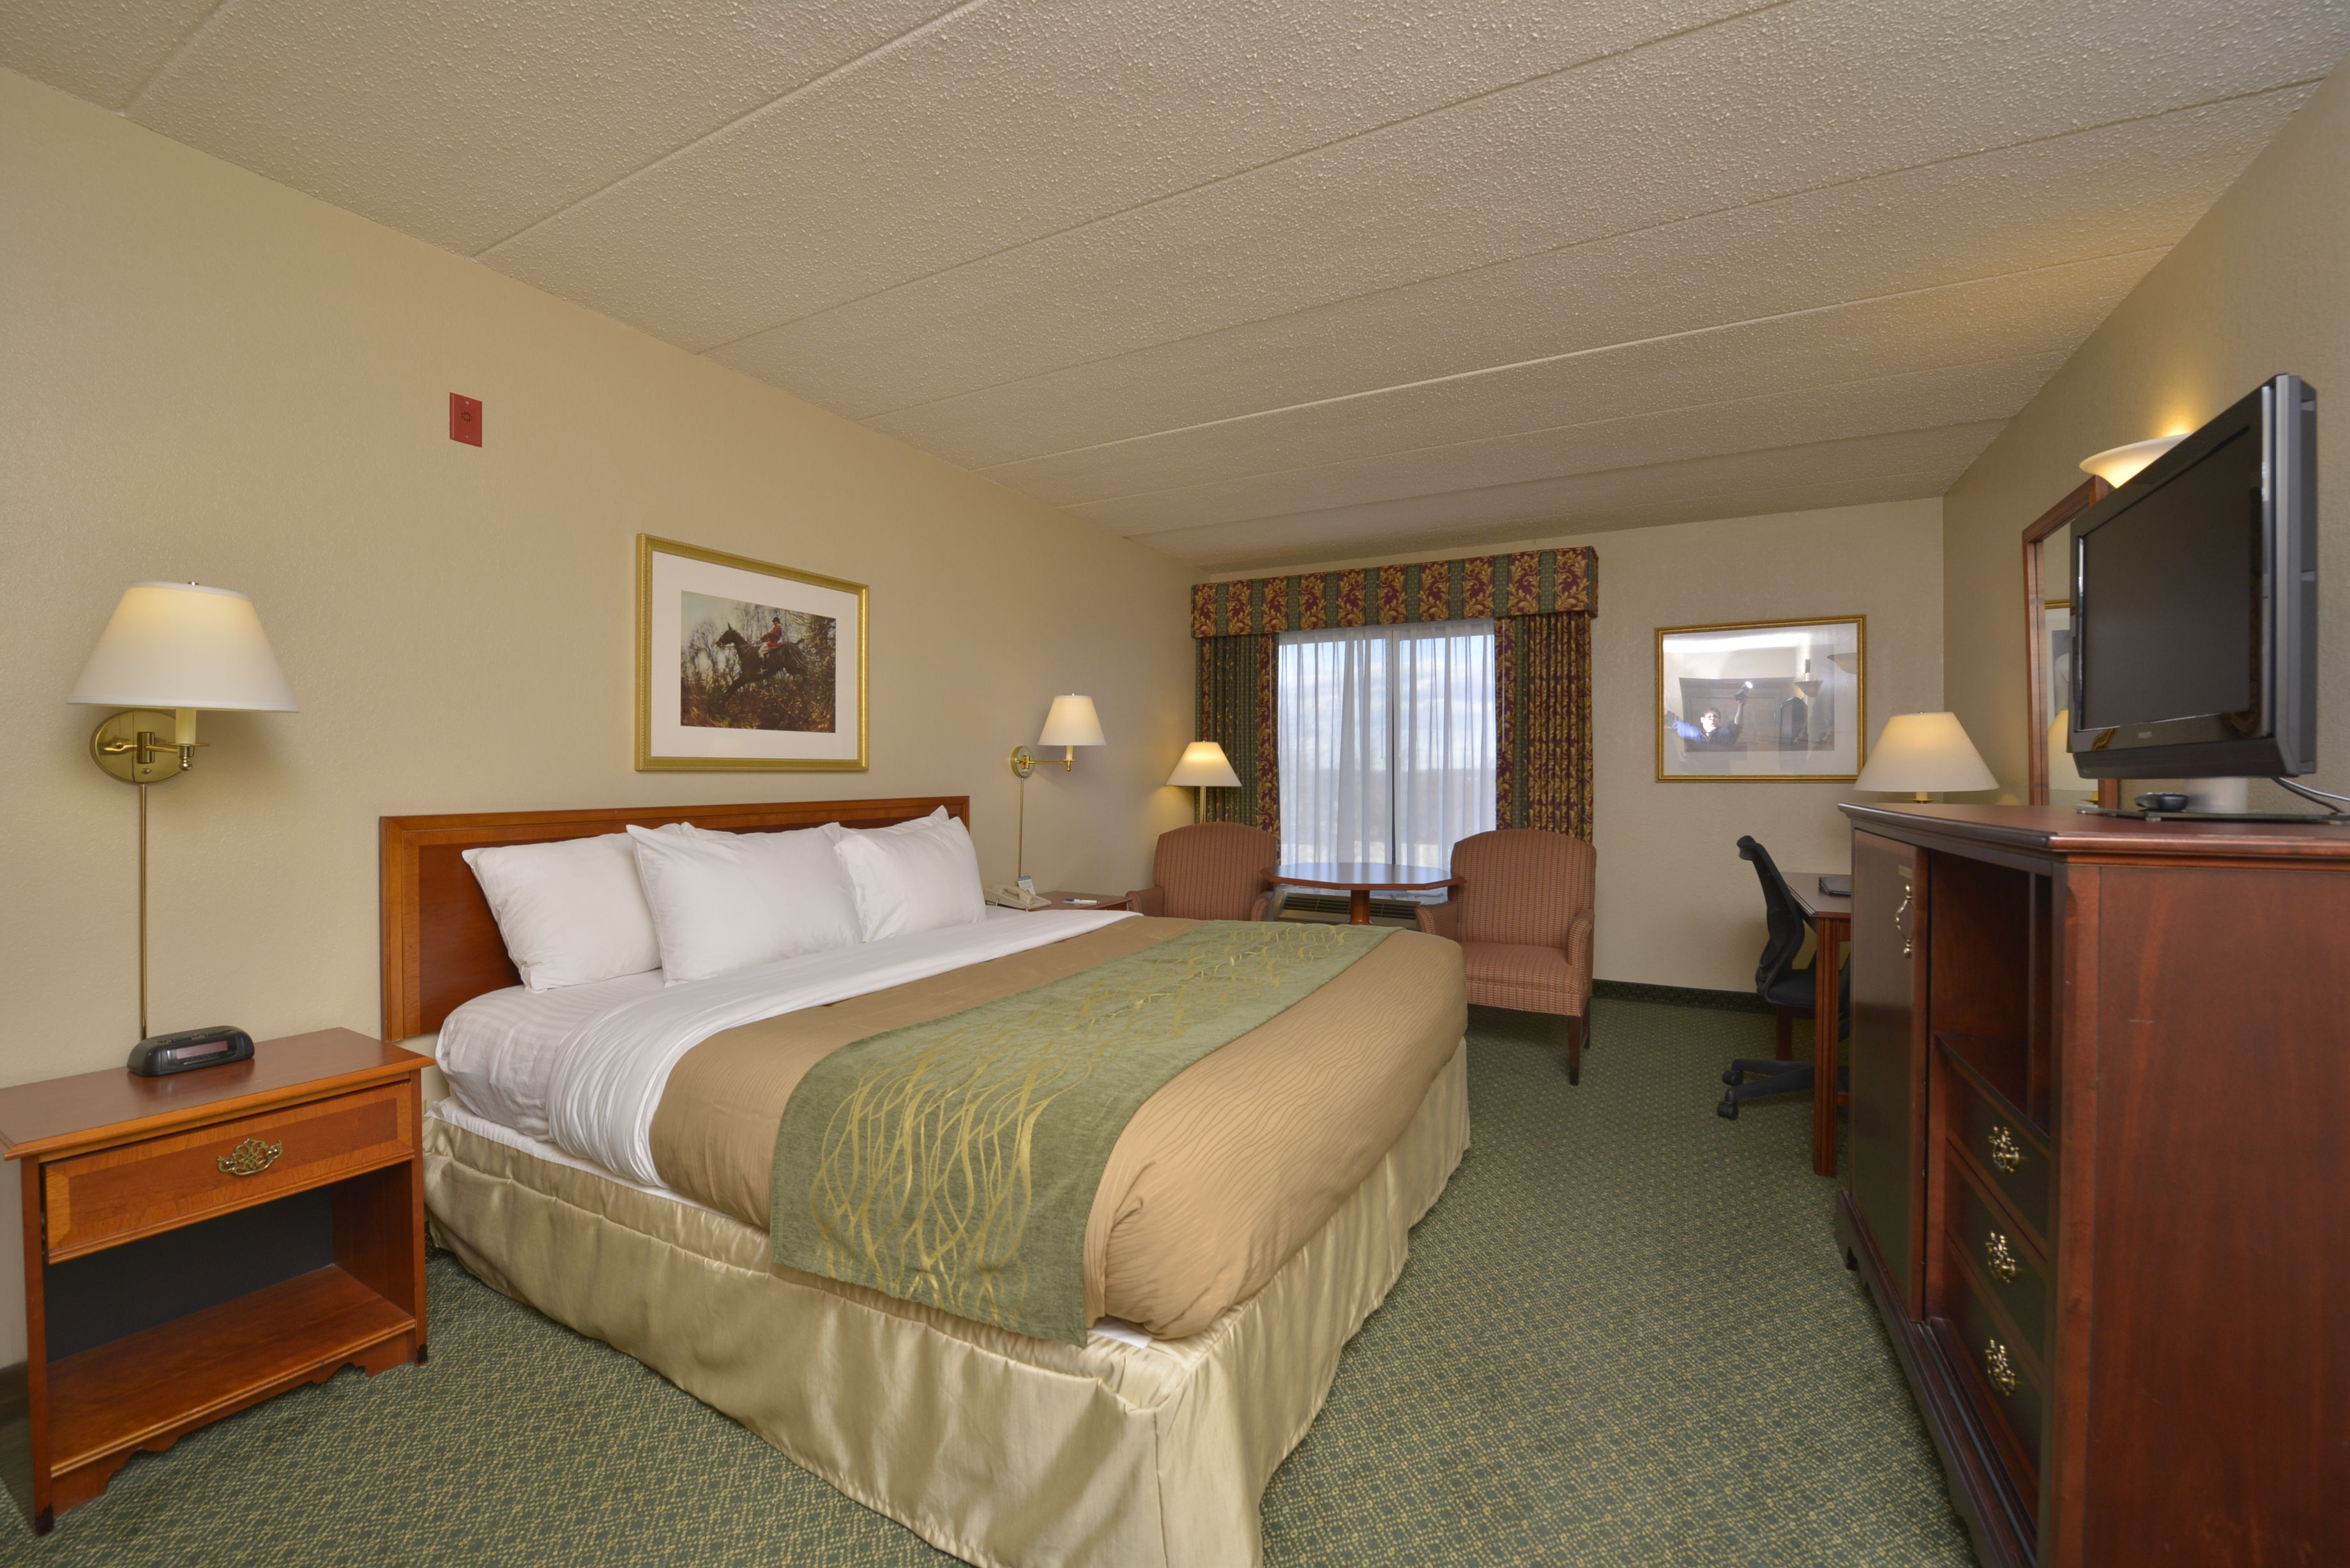 Standard Guest Room with 1 King Bed #ComfortInn #Springfield